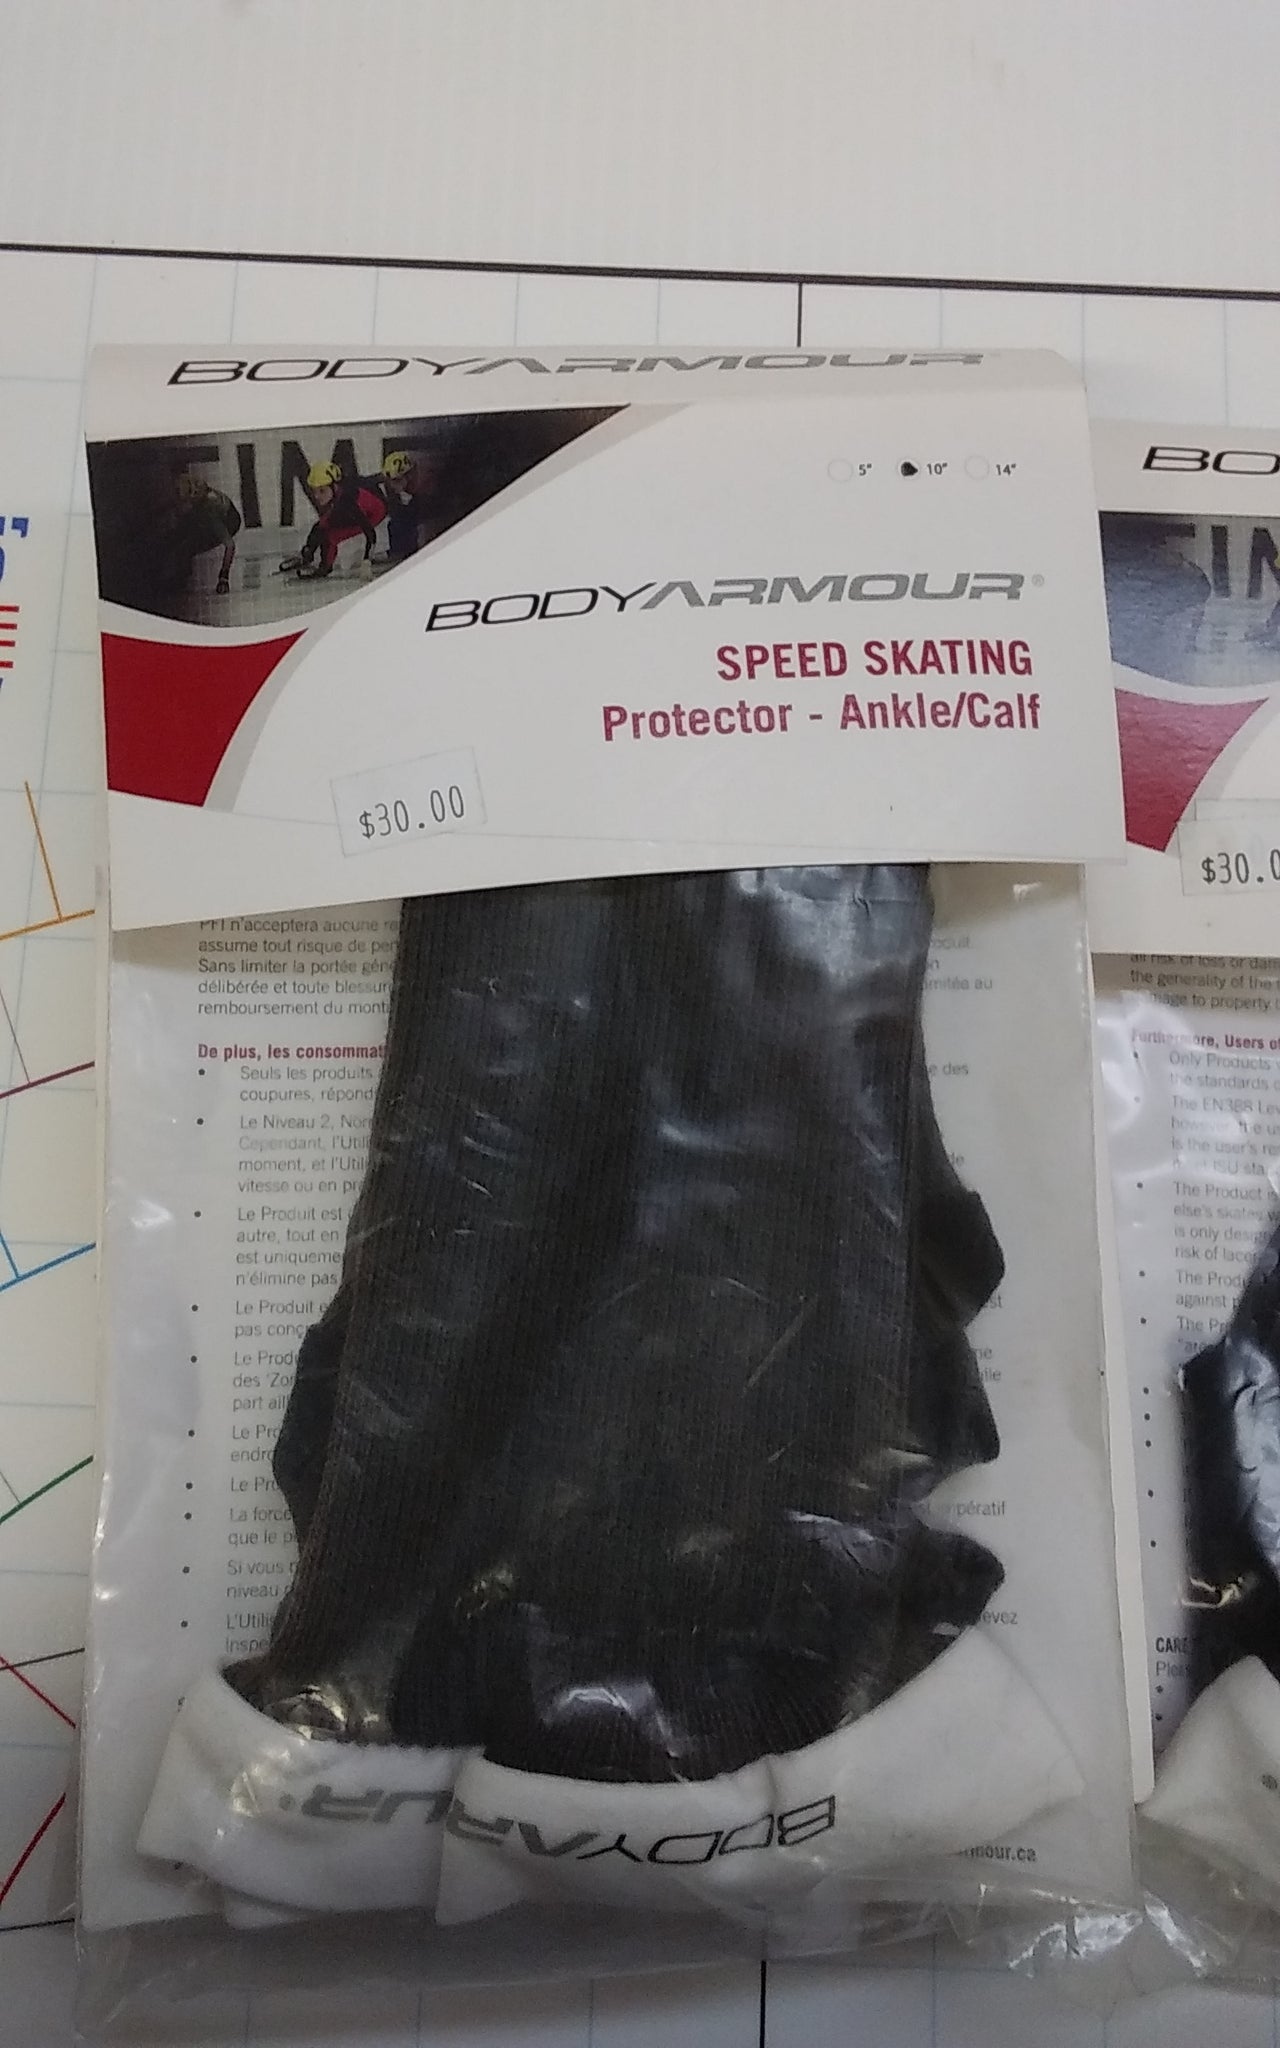 BodyArmour SPEED SKATING Protector - Ankle / Calf